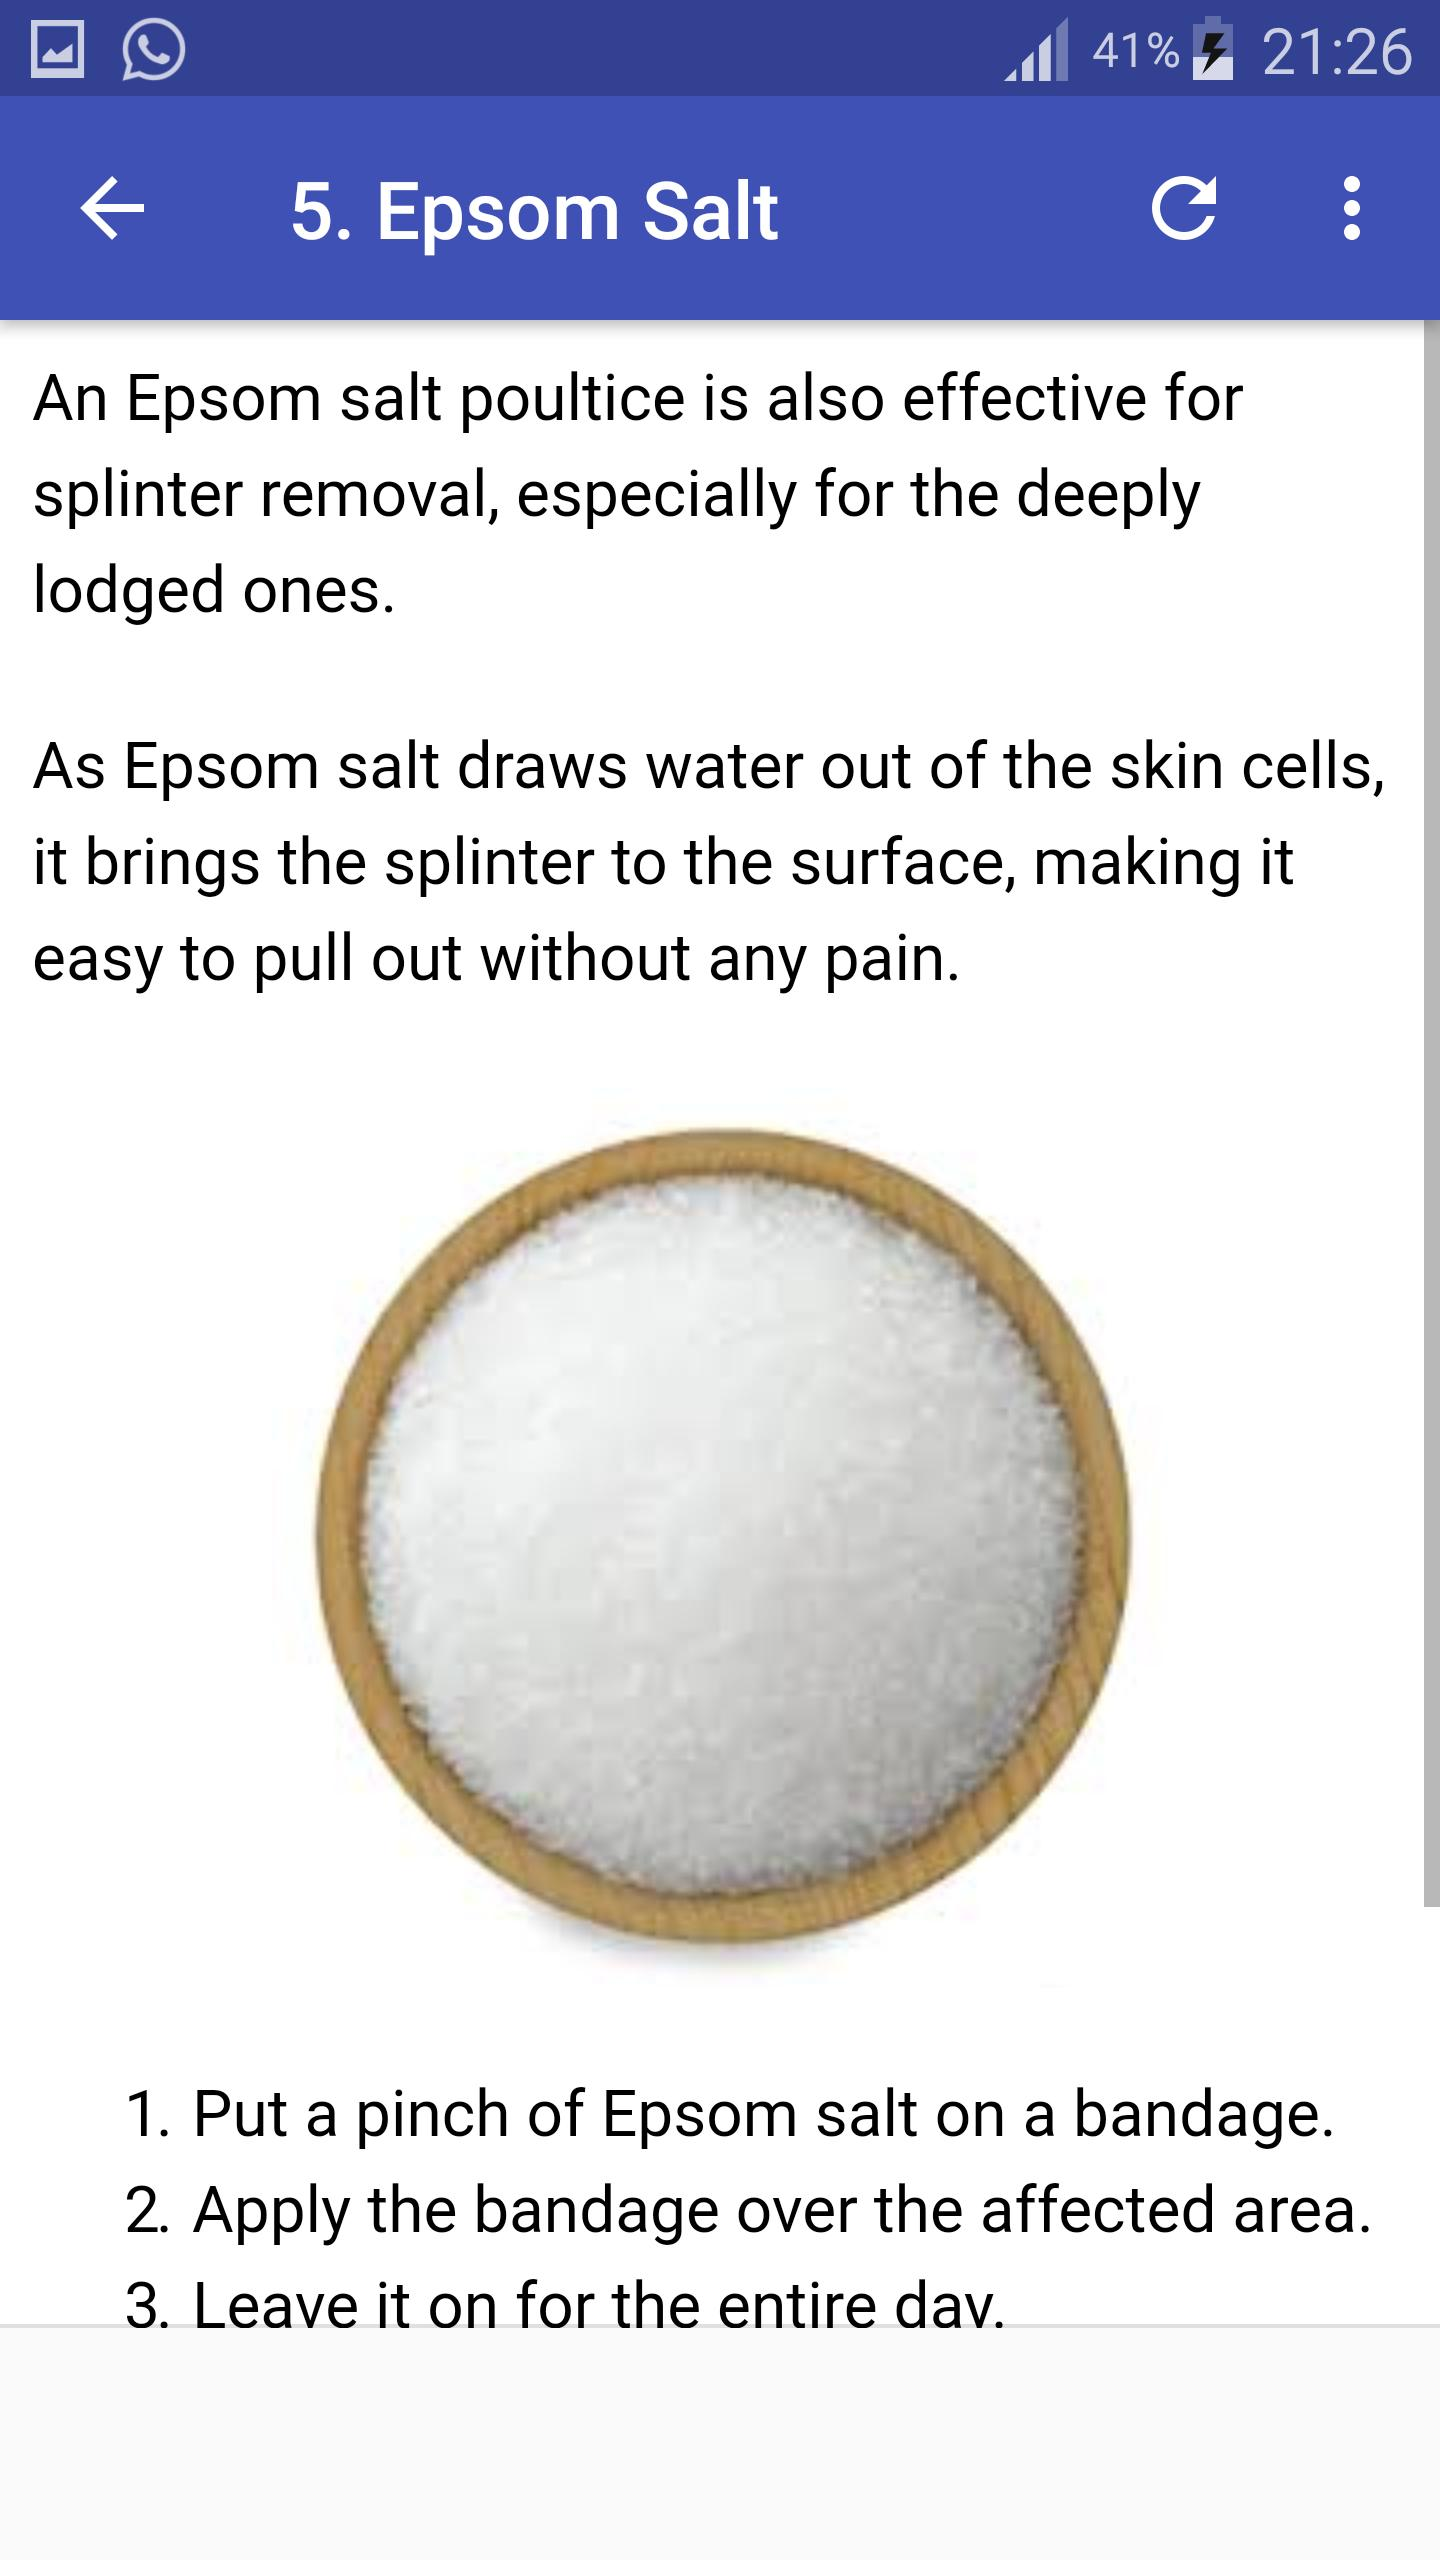 How to remove splinter safely at Home for Android - APK Download